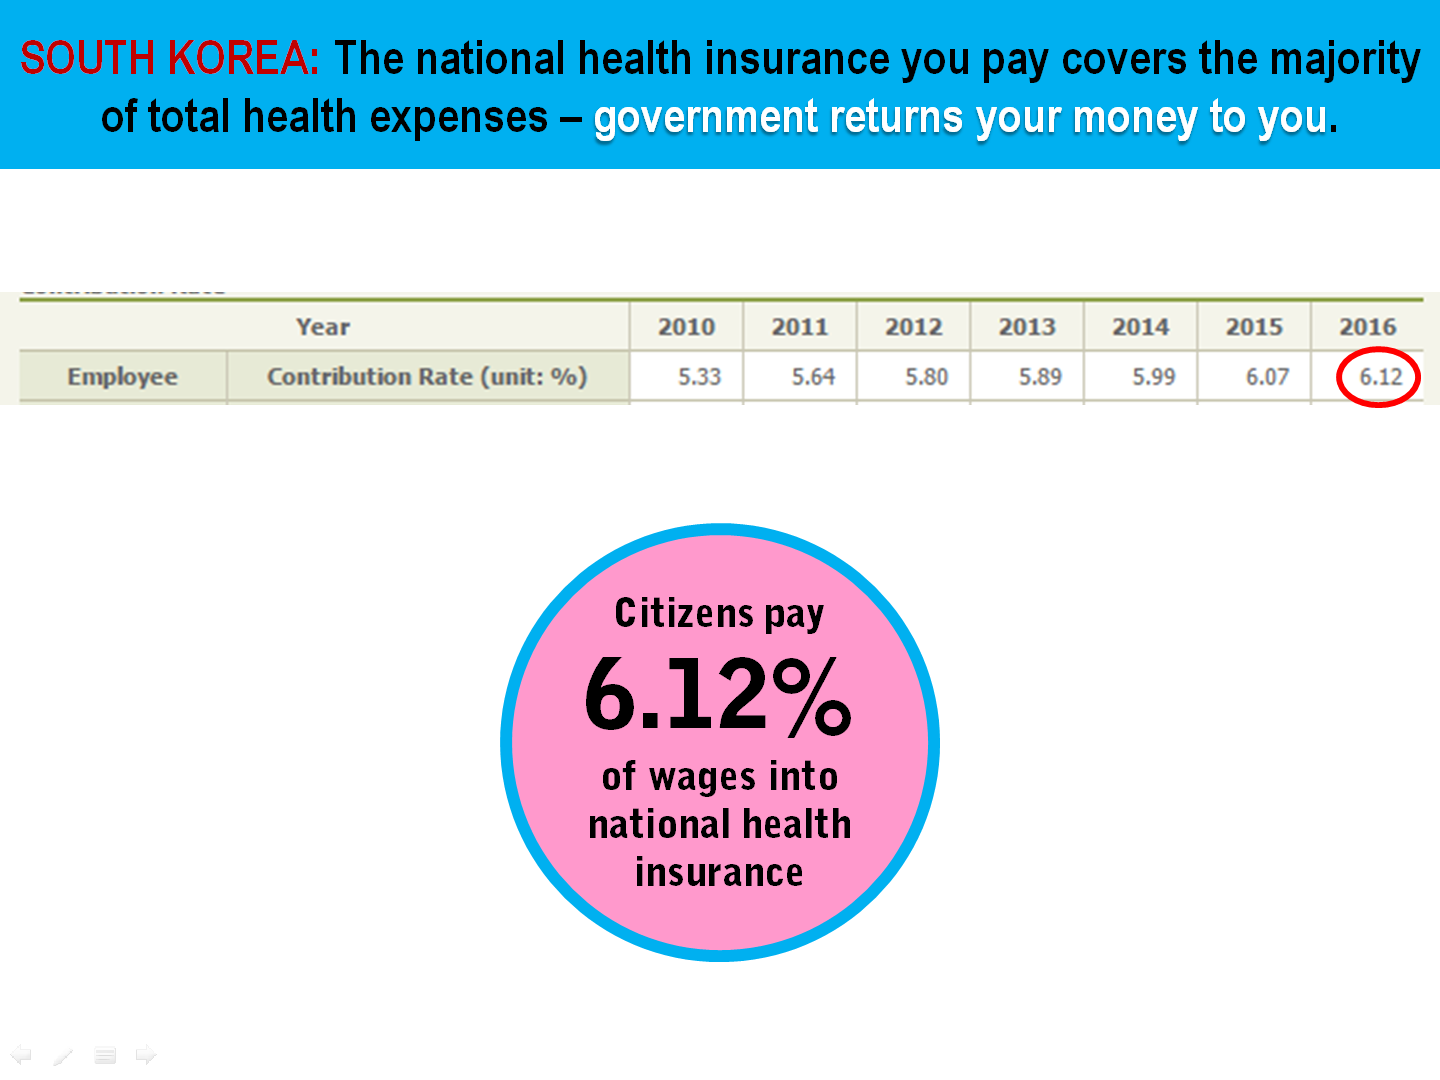 3 South Korea Health Insurance Contribution Rate vs Total Expenditure.png